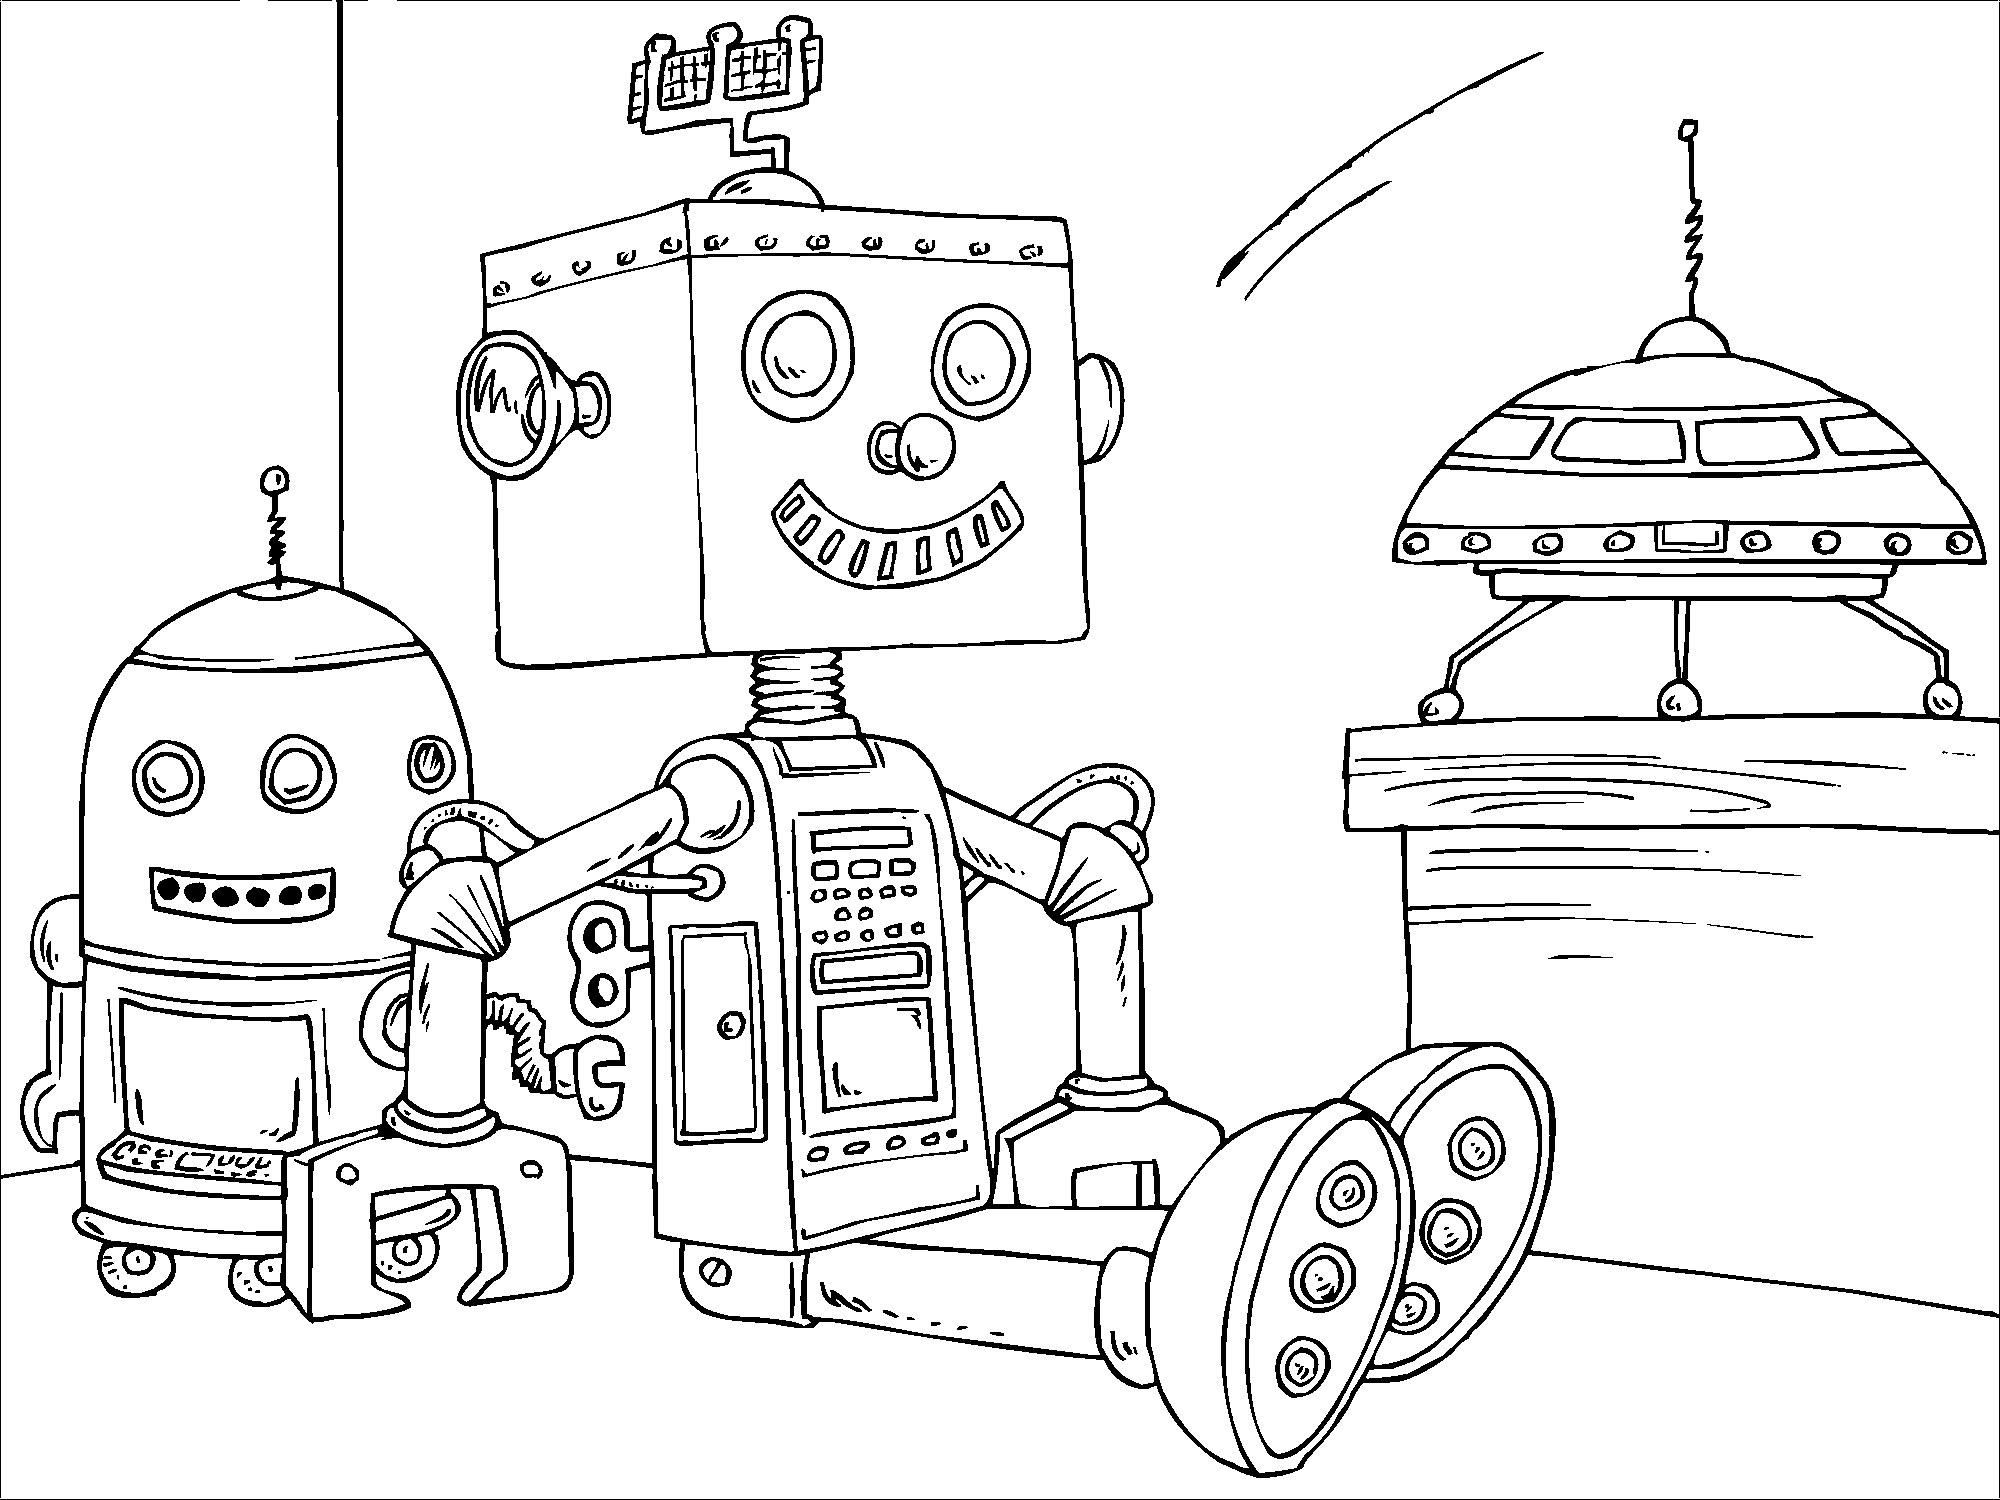 Coloriage robot jouet img 22820 - Robot coloriage ...